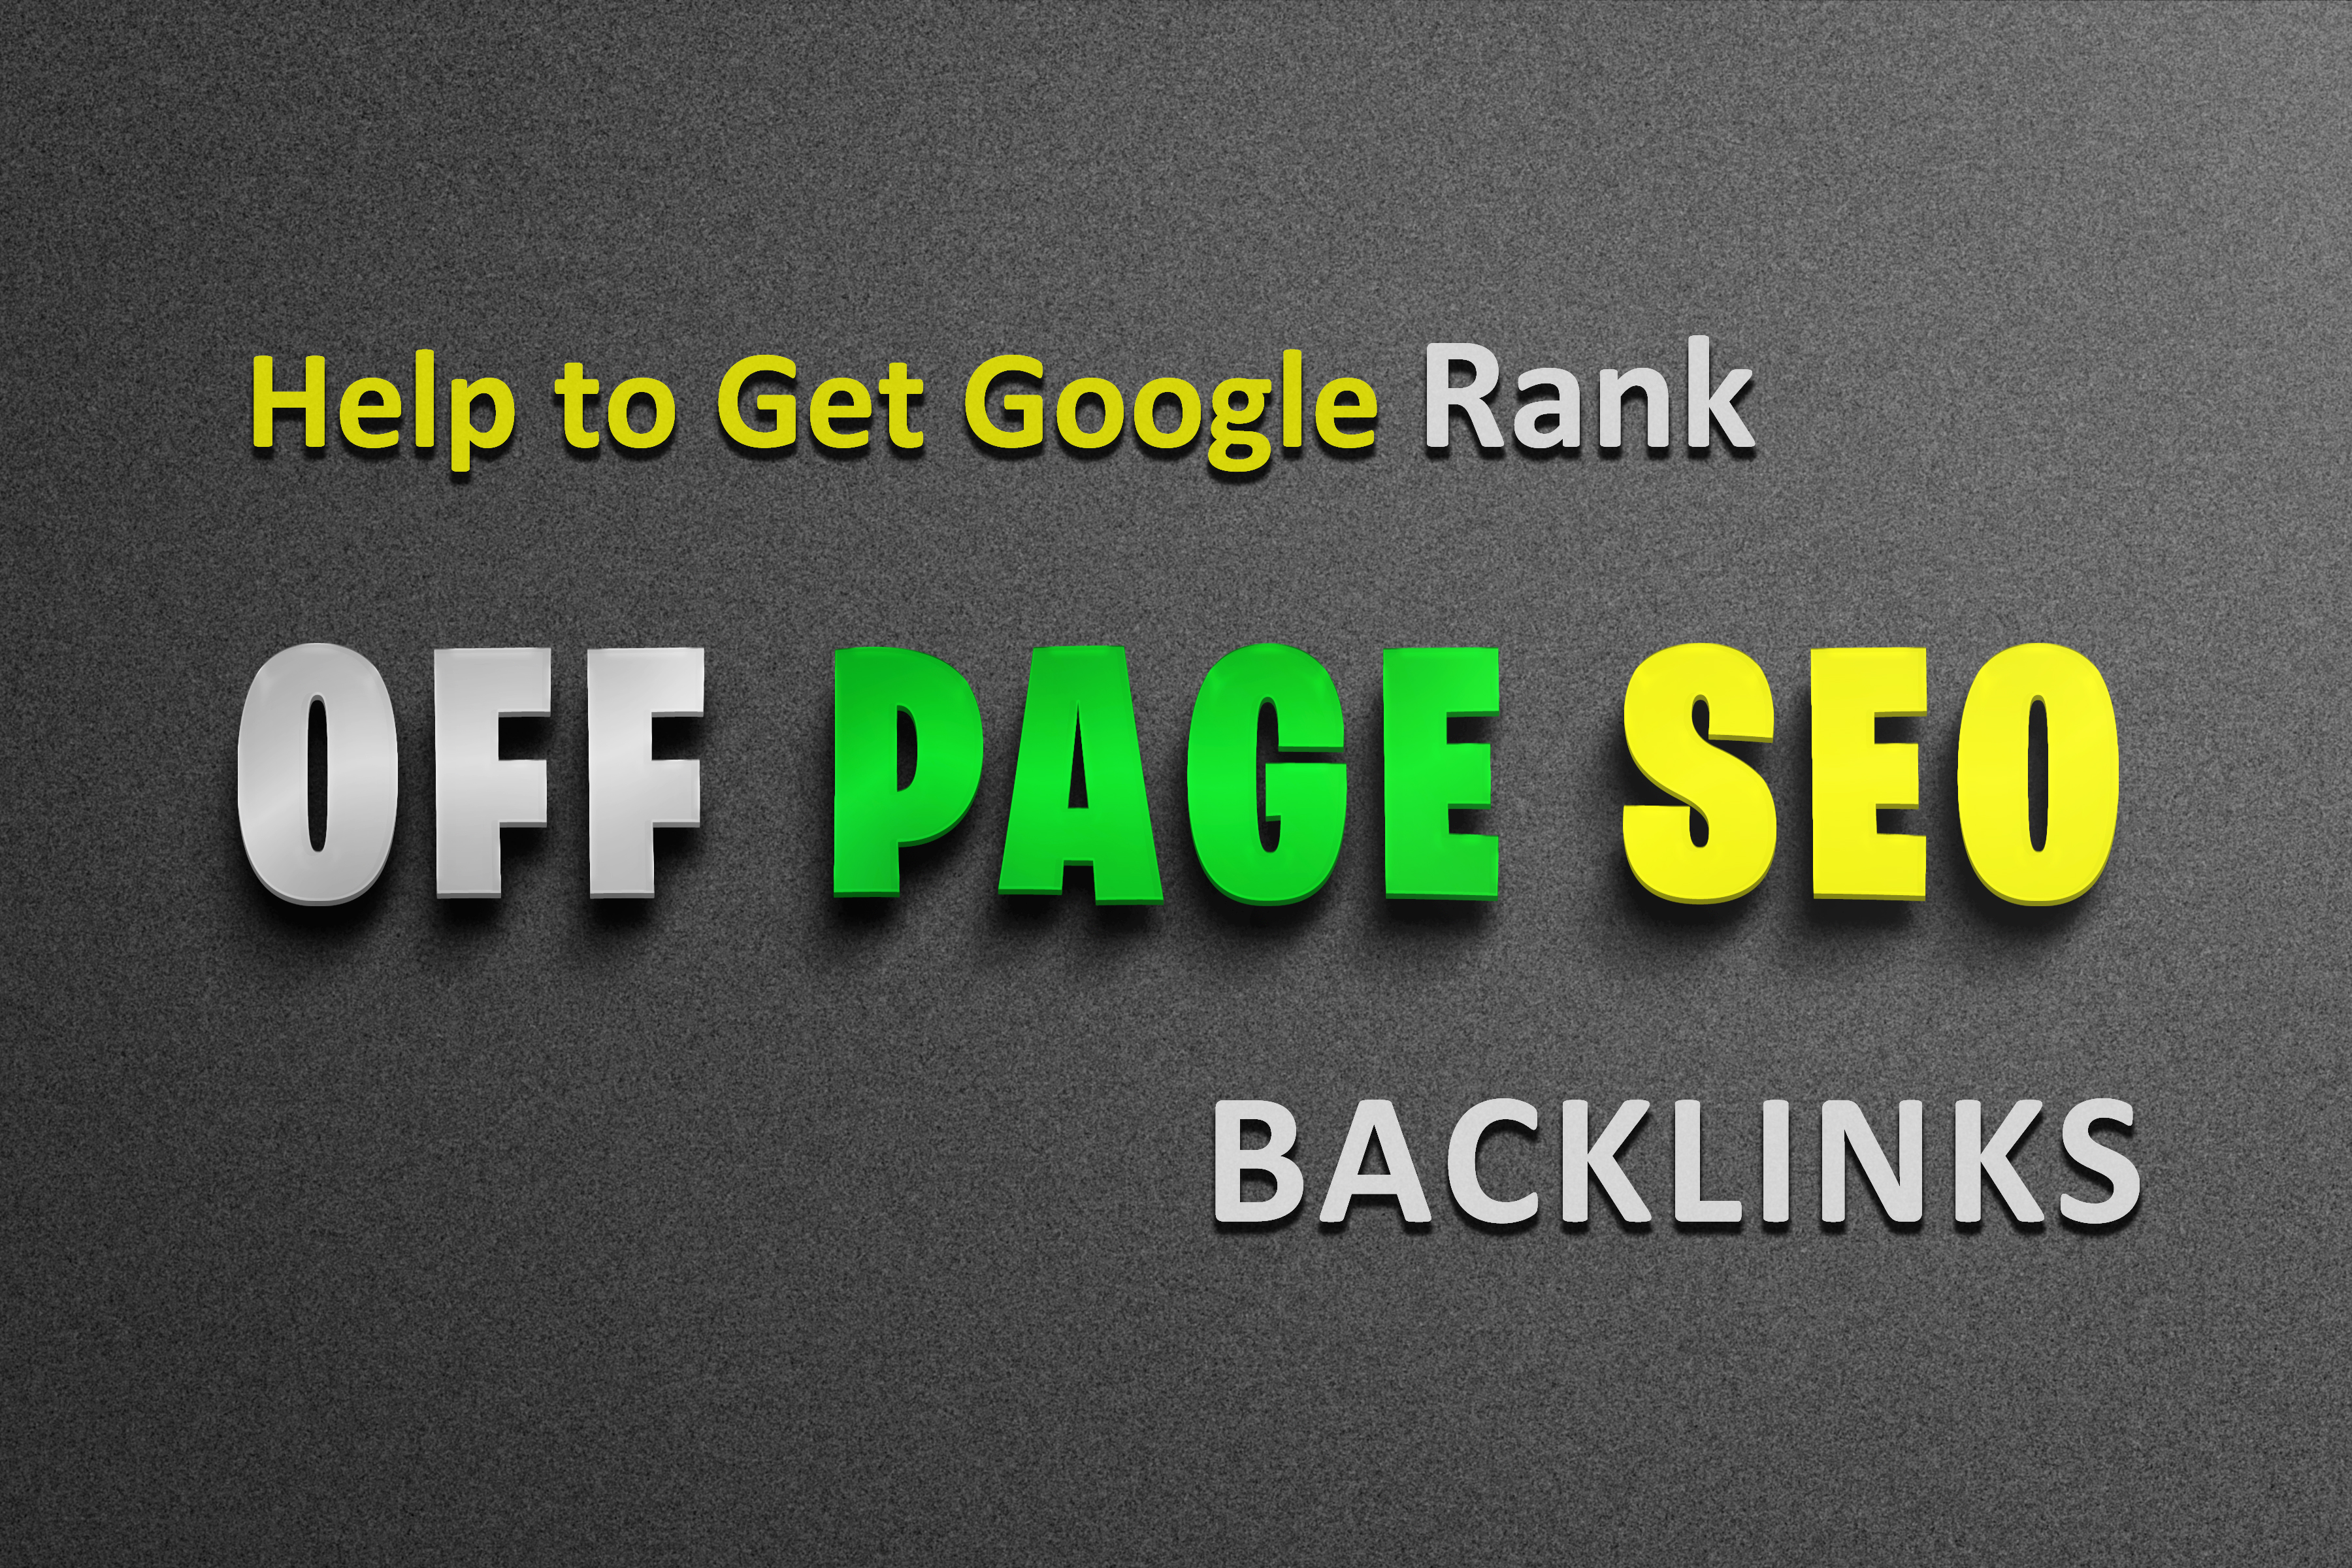 N0. 1 Google Ranking - Off Page SEO Backlink PACK - trusted links - White hat SEO link plan